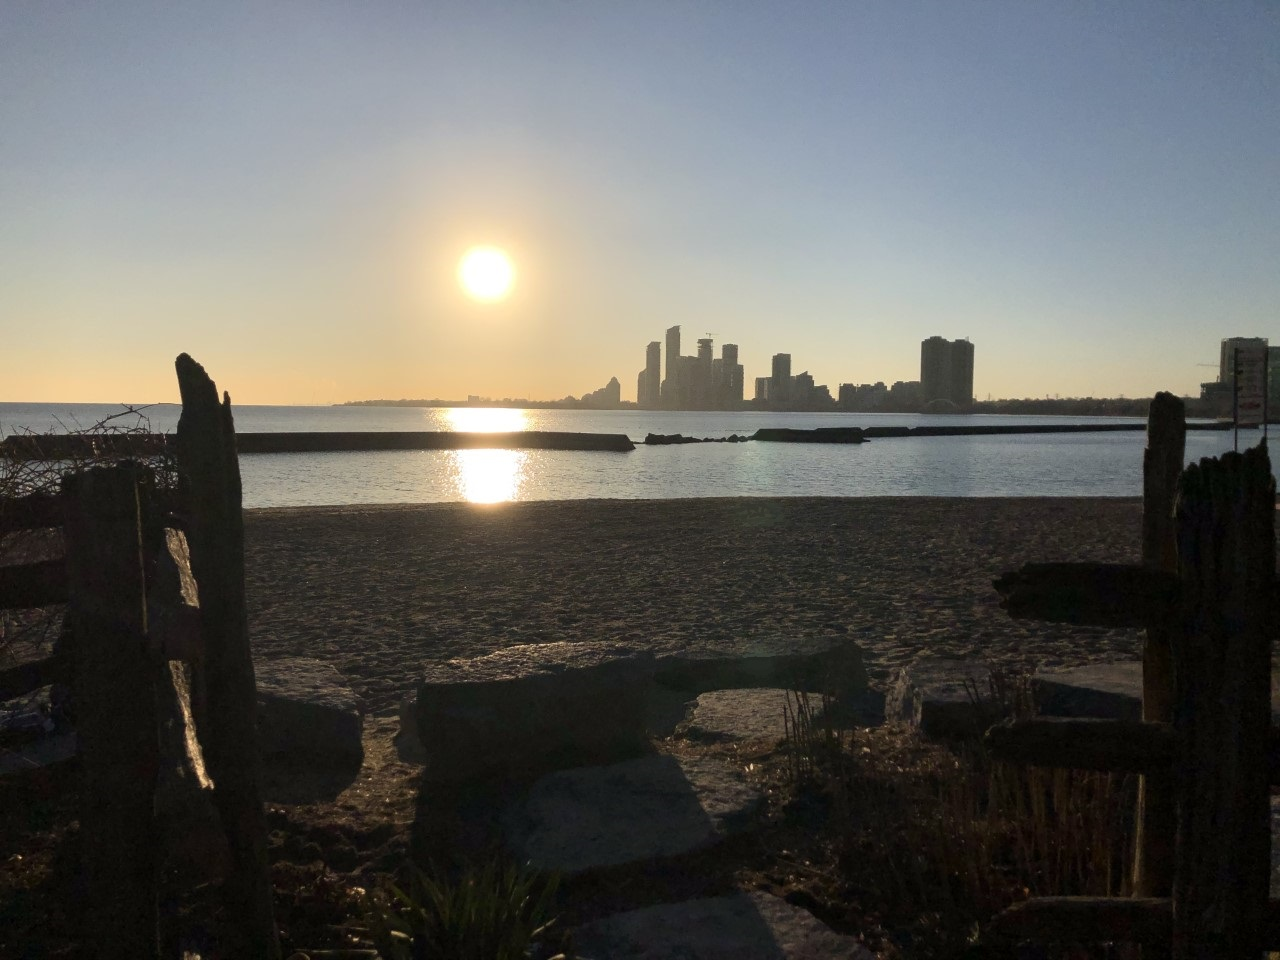 Daily Photo, Toronto, Etobicoke, Humber Bay Shores